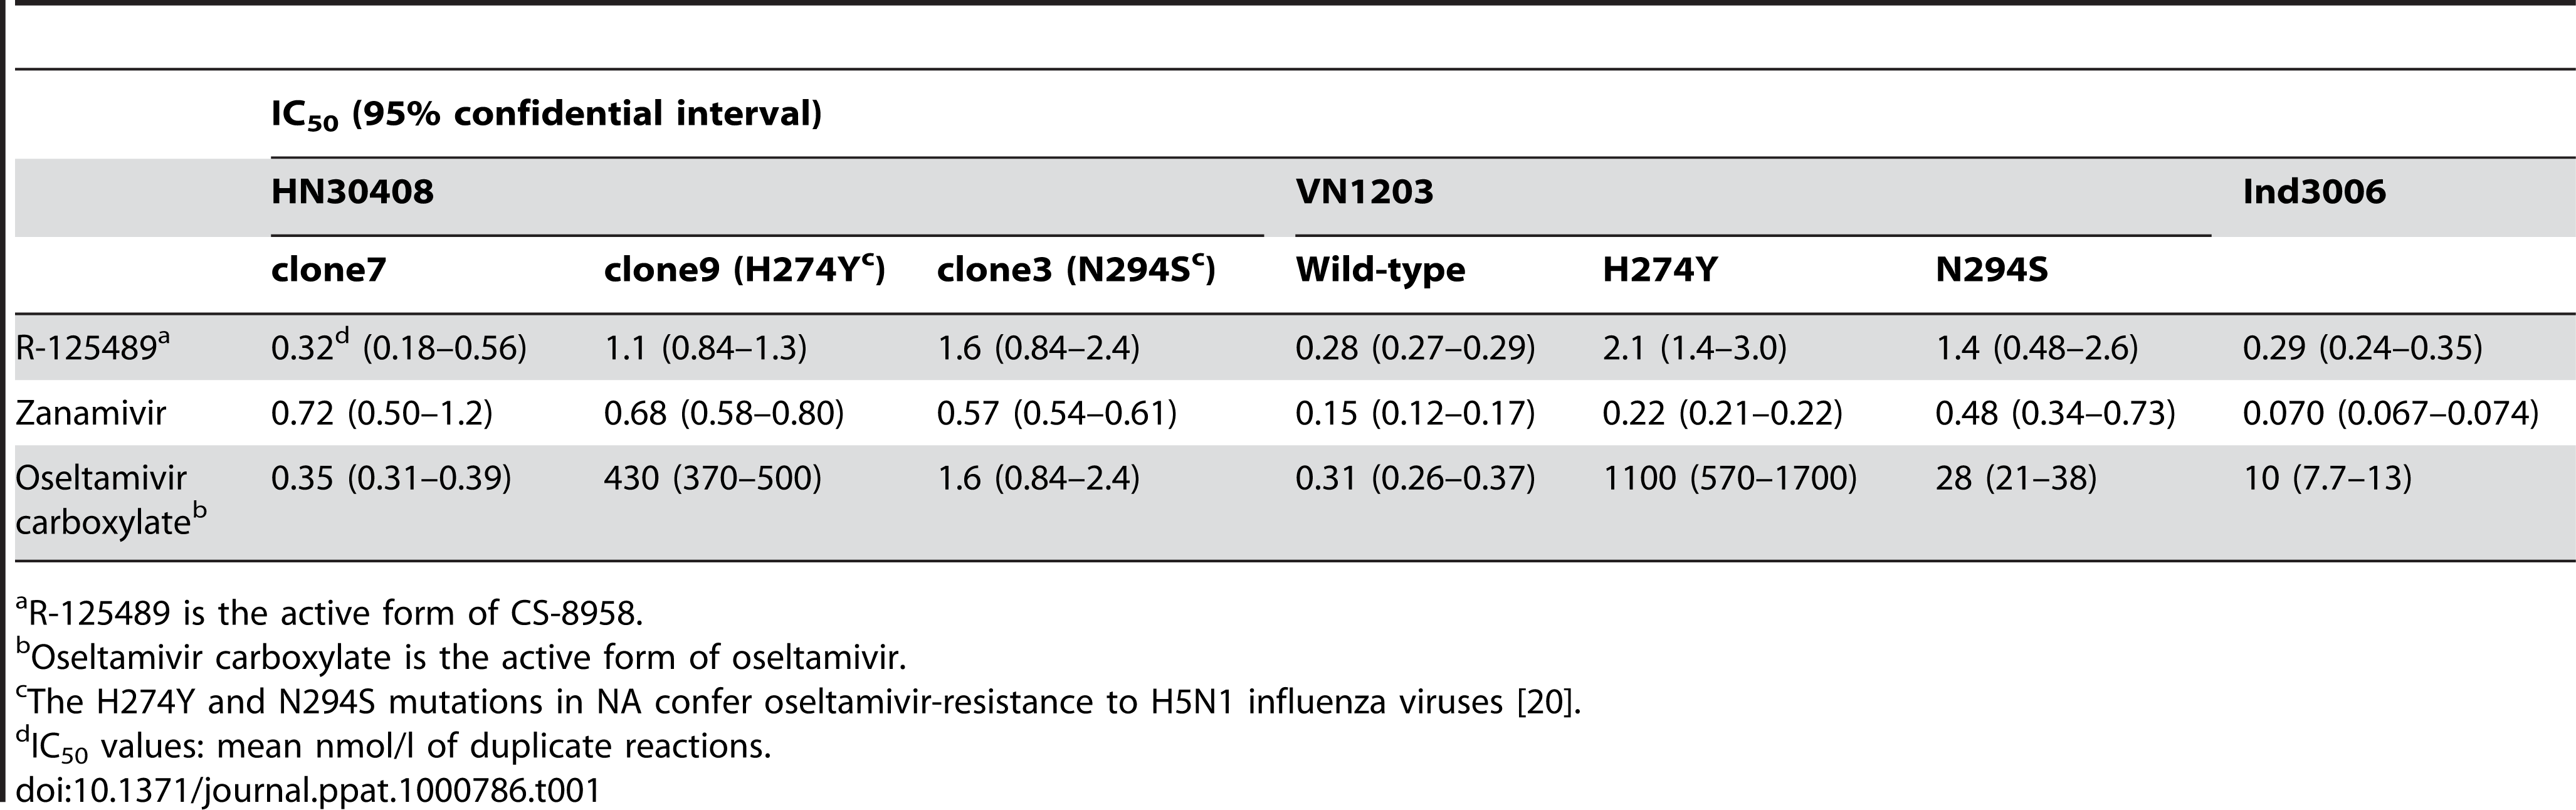 Inhibitory effect of R-125489, zanamivir, and oseltamivir carboxylate on the NA activity of H5N1 influenza viruses.